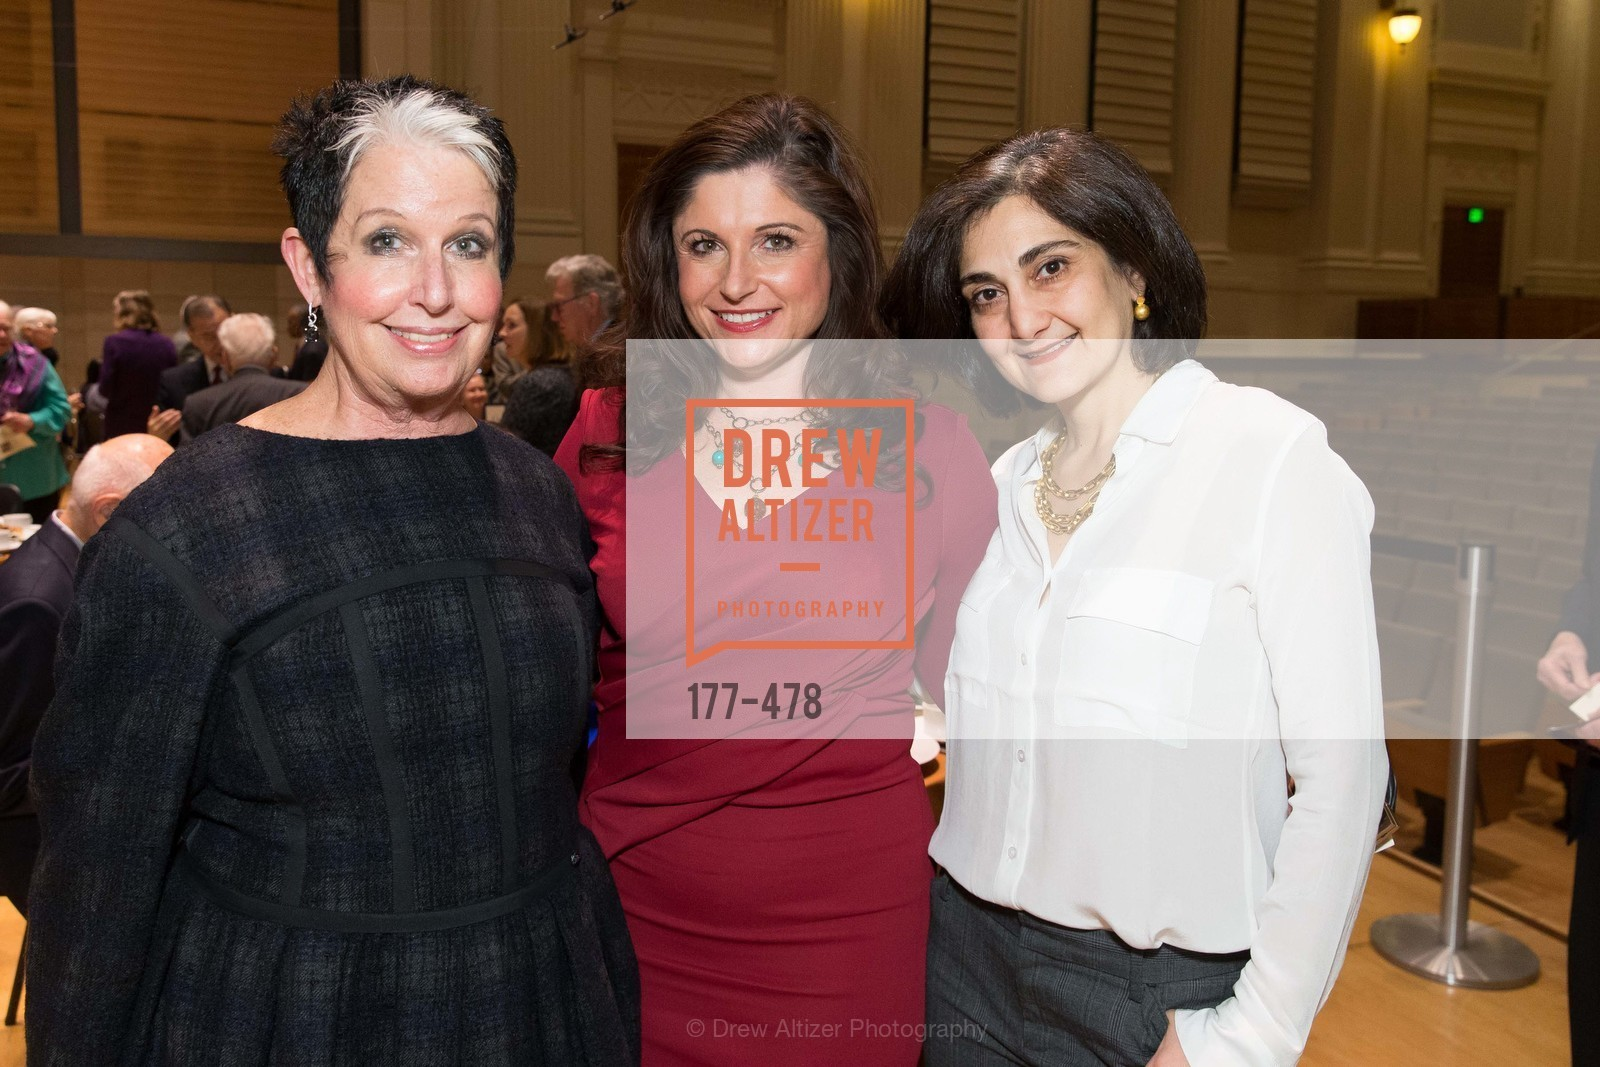 Karen Kubin, Barbara Walkowski, Fati Farmanfarmian, SAN FRANCISCO CONSERVATORY OF MUSIC'S 2014 Fanfare Luncheon, US. Conservatory of Music, January 24th, 2014,Drew Altizer, Drew Altizer Photography, full-service agency, private events, San Francisco photographer, photographer california